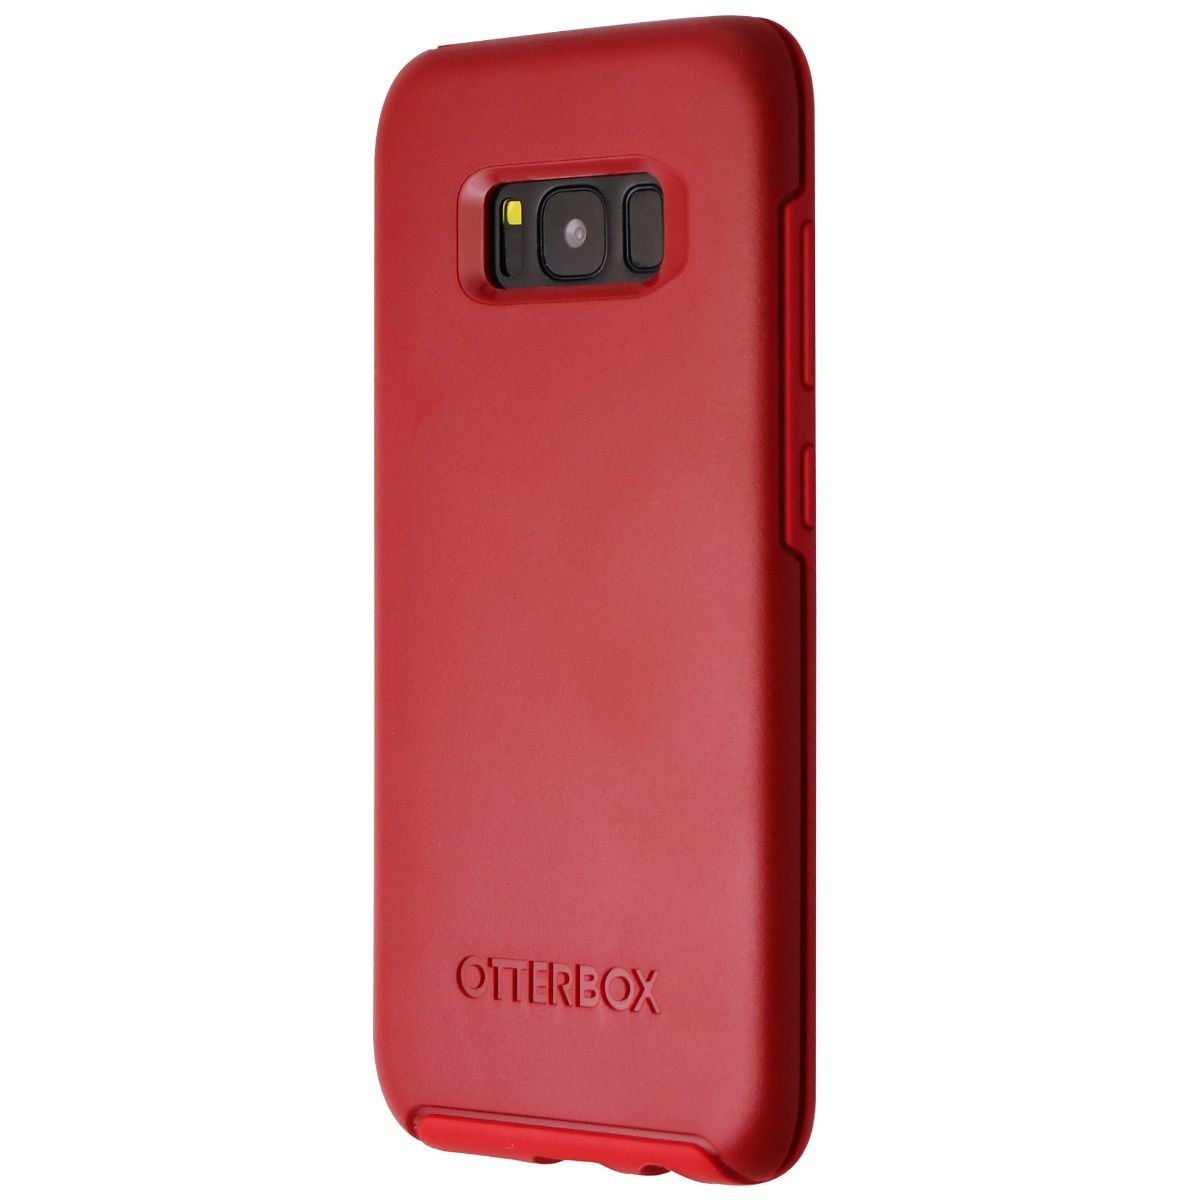 OtterBox Symmetry Case for Samsung Galaxy S8 - Rosso Corsa (Flame Red/ Race Red)